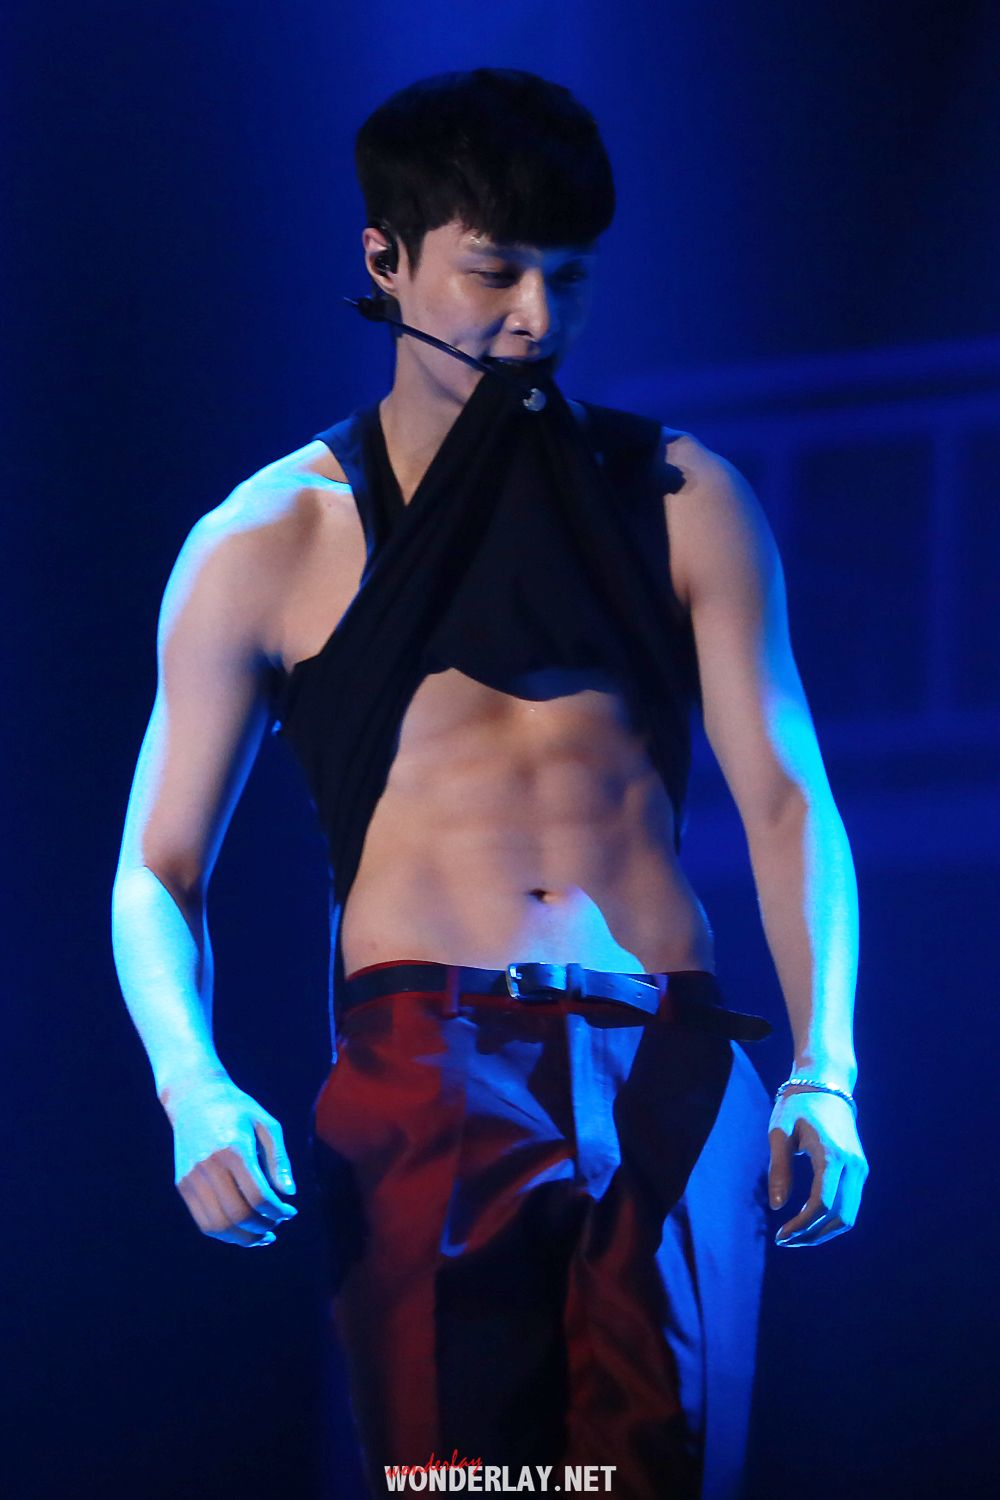 As if Lay showing his abs isn't hot enough, he has to do ...